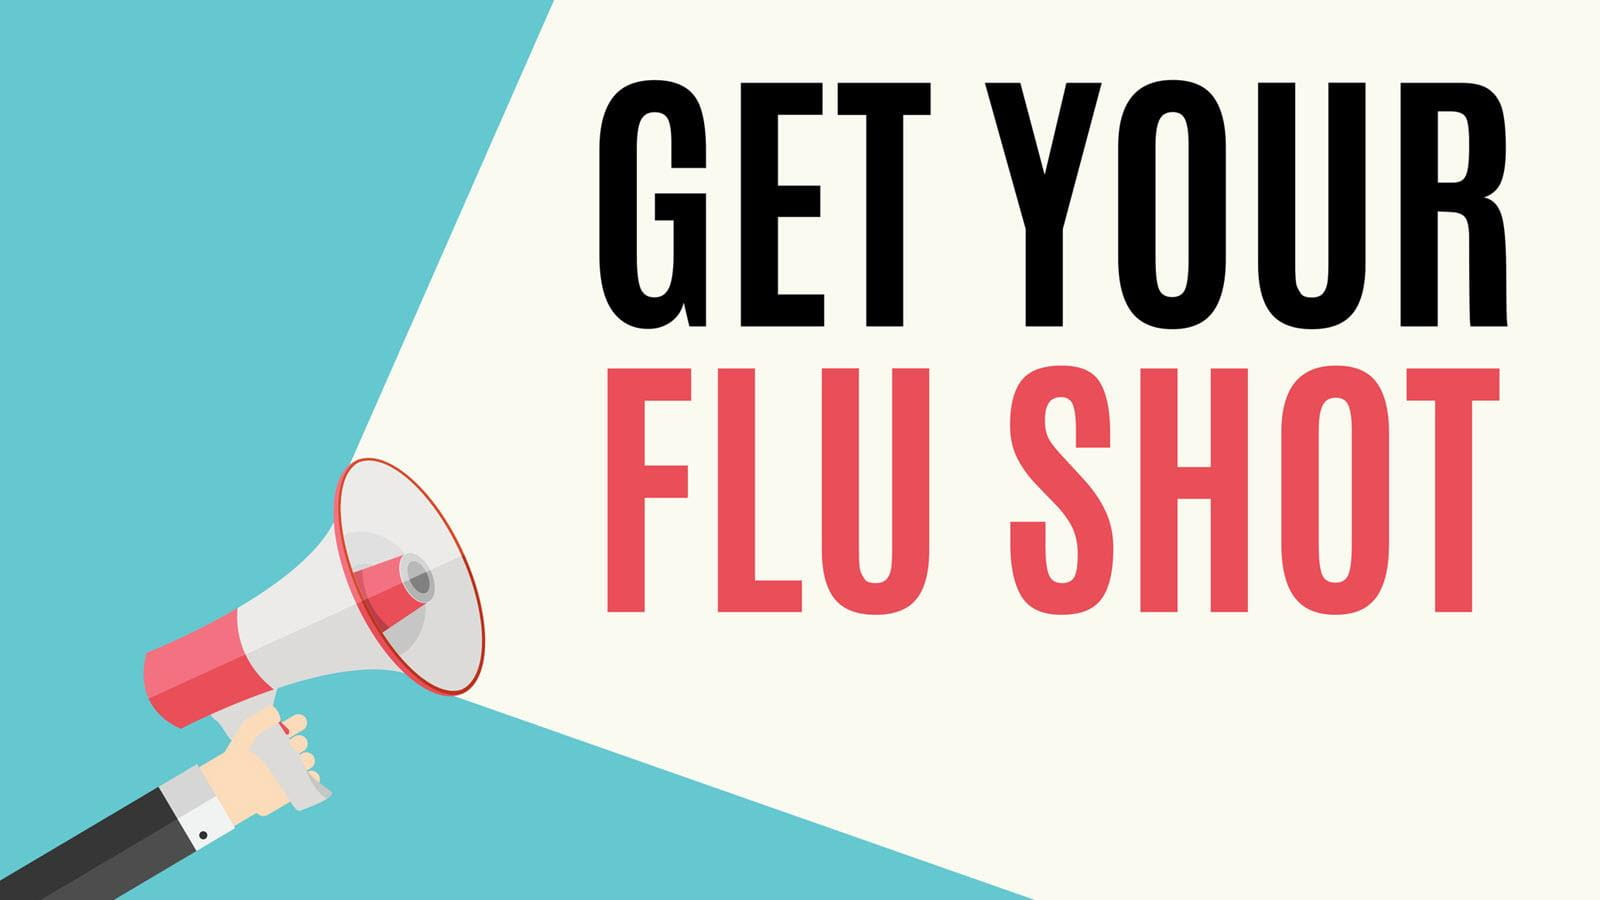 Megaphone  with text that says GET YOUR FLU SHOT